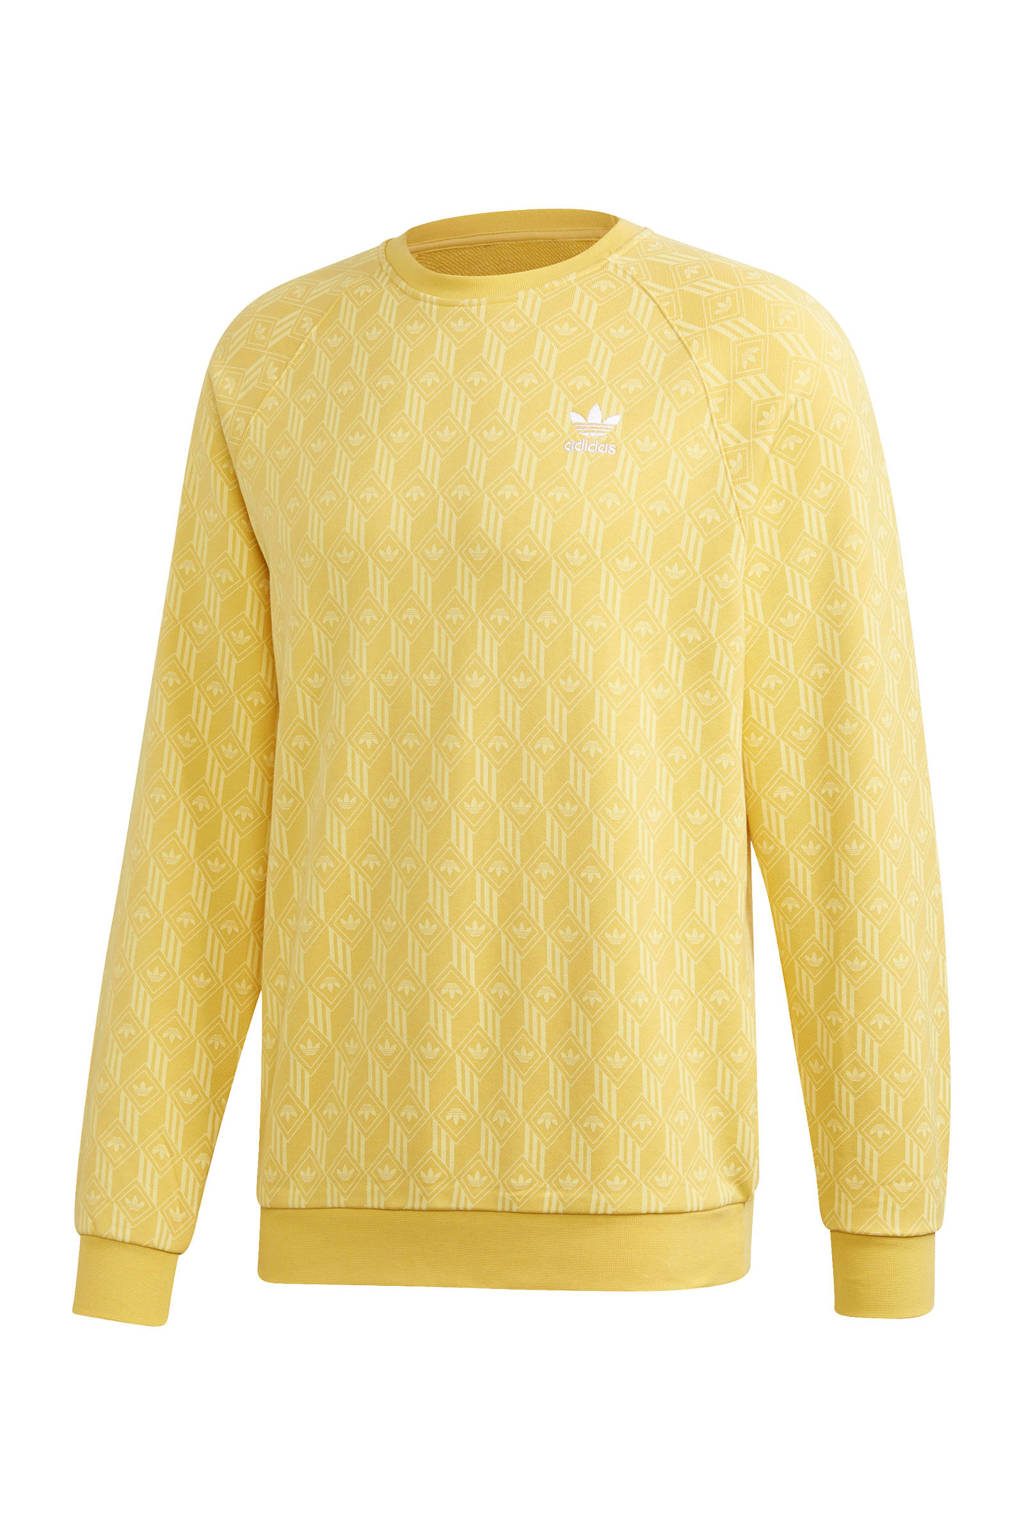 adidas Originals   sweater geel, Geel